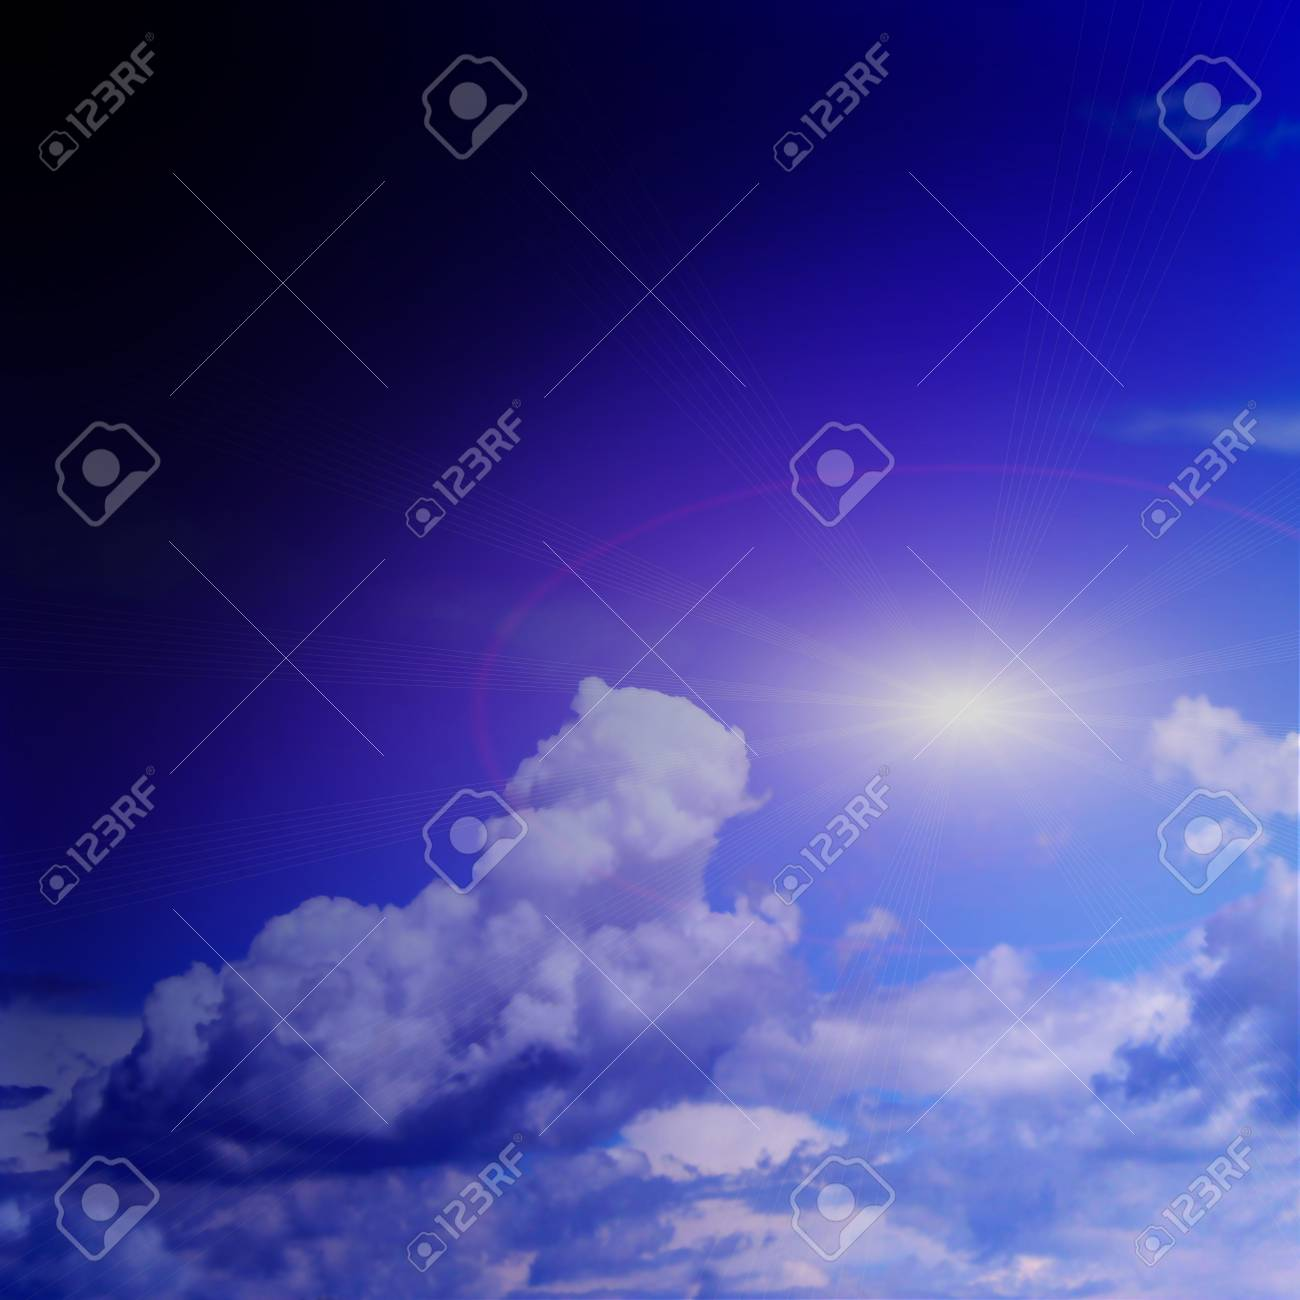 abstract reflection blue sky in water surface Stock Photo - 4516327